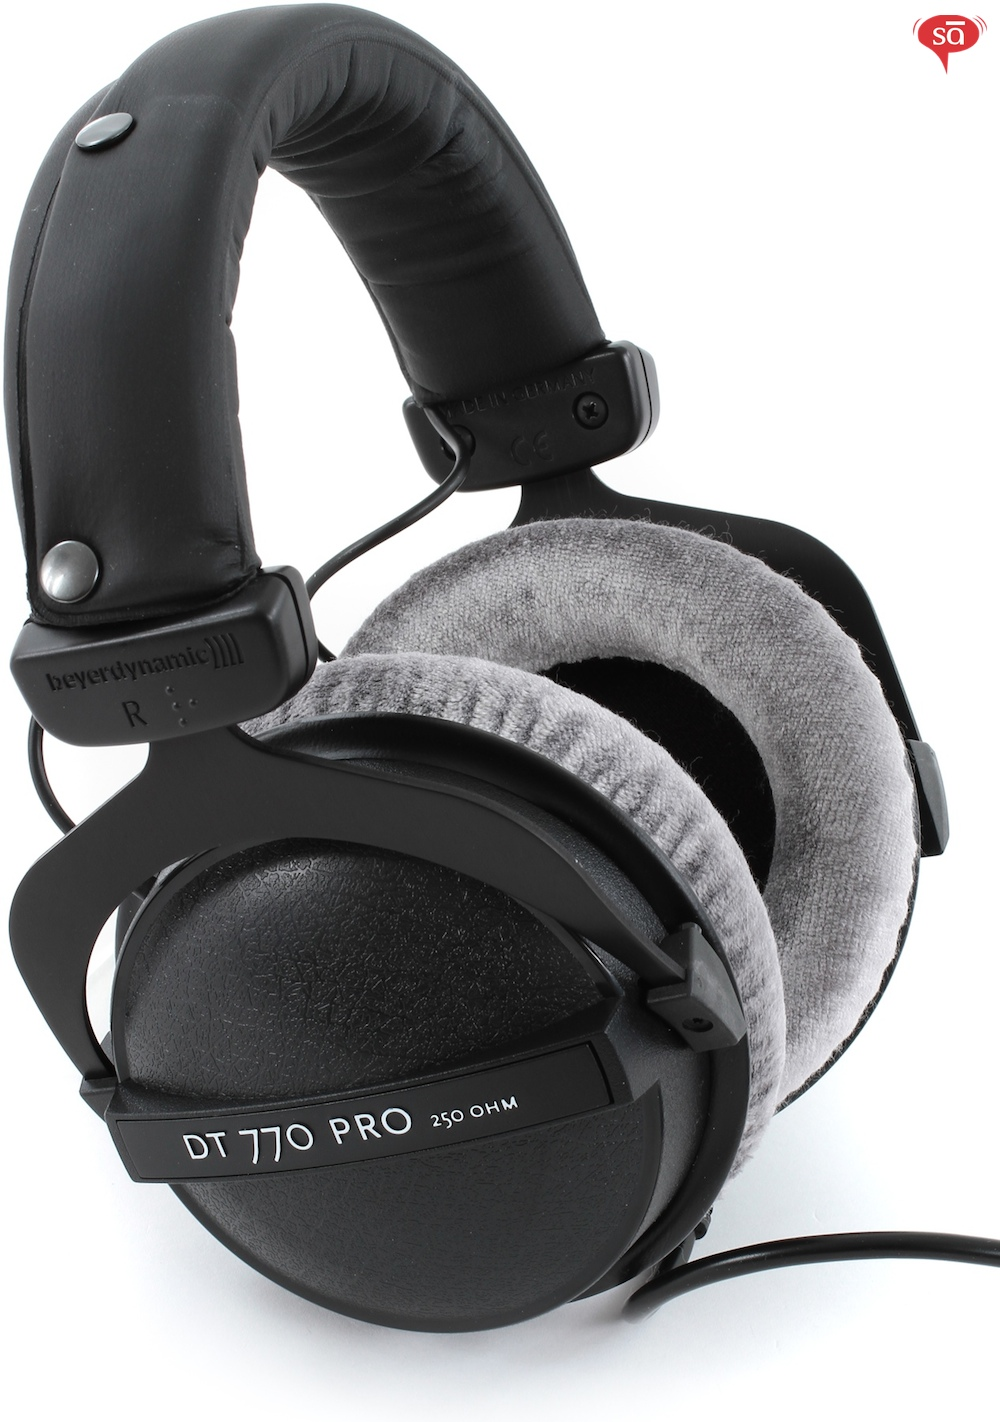 beyerdynamic dt 770 pro 250 ohm headphones. Black Bedroom Furniture Sets. Home Design Ideas